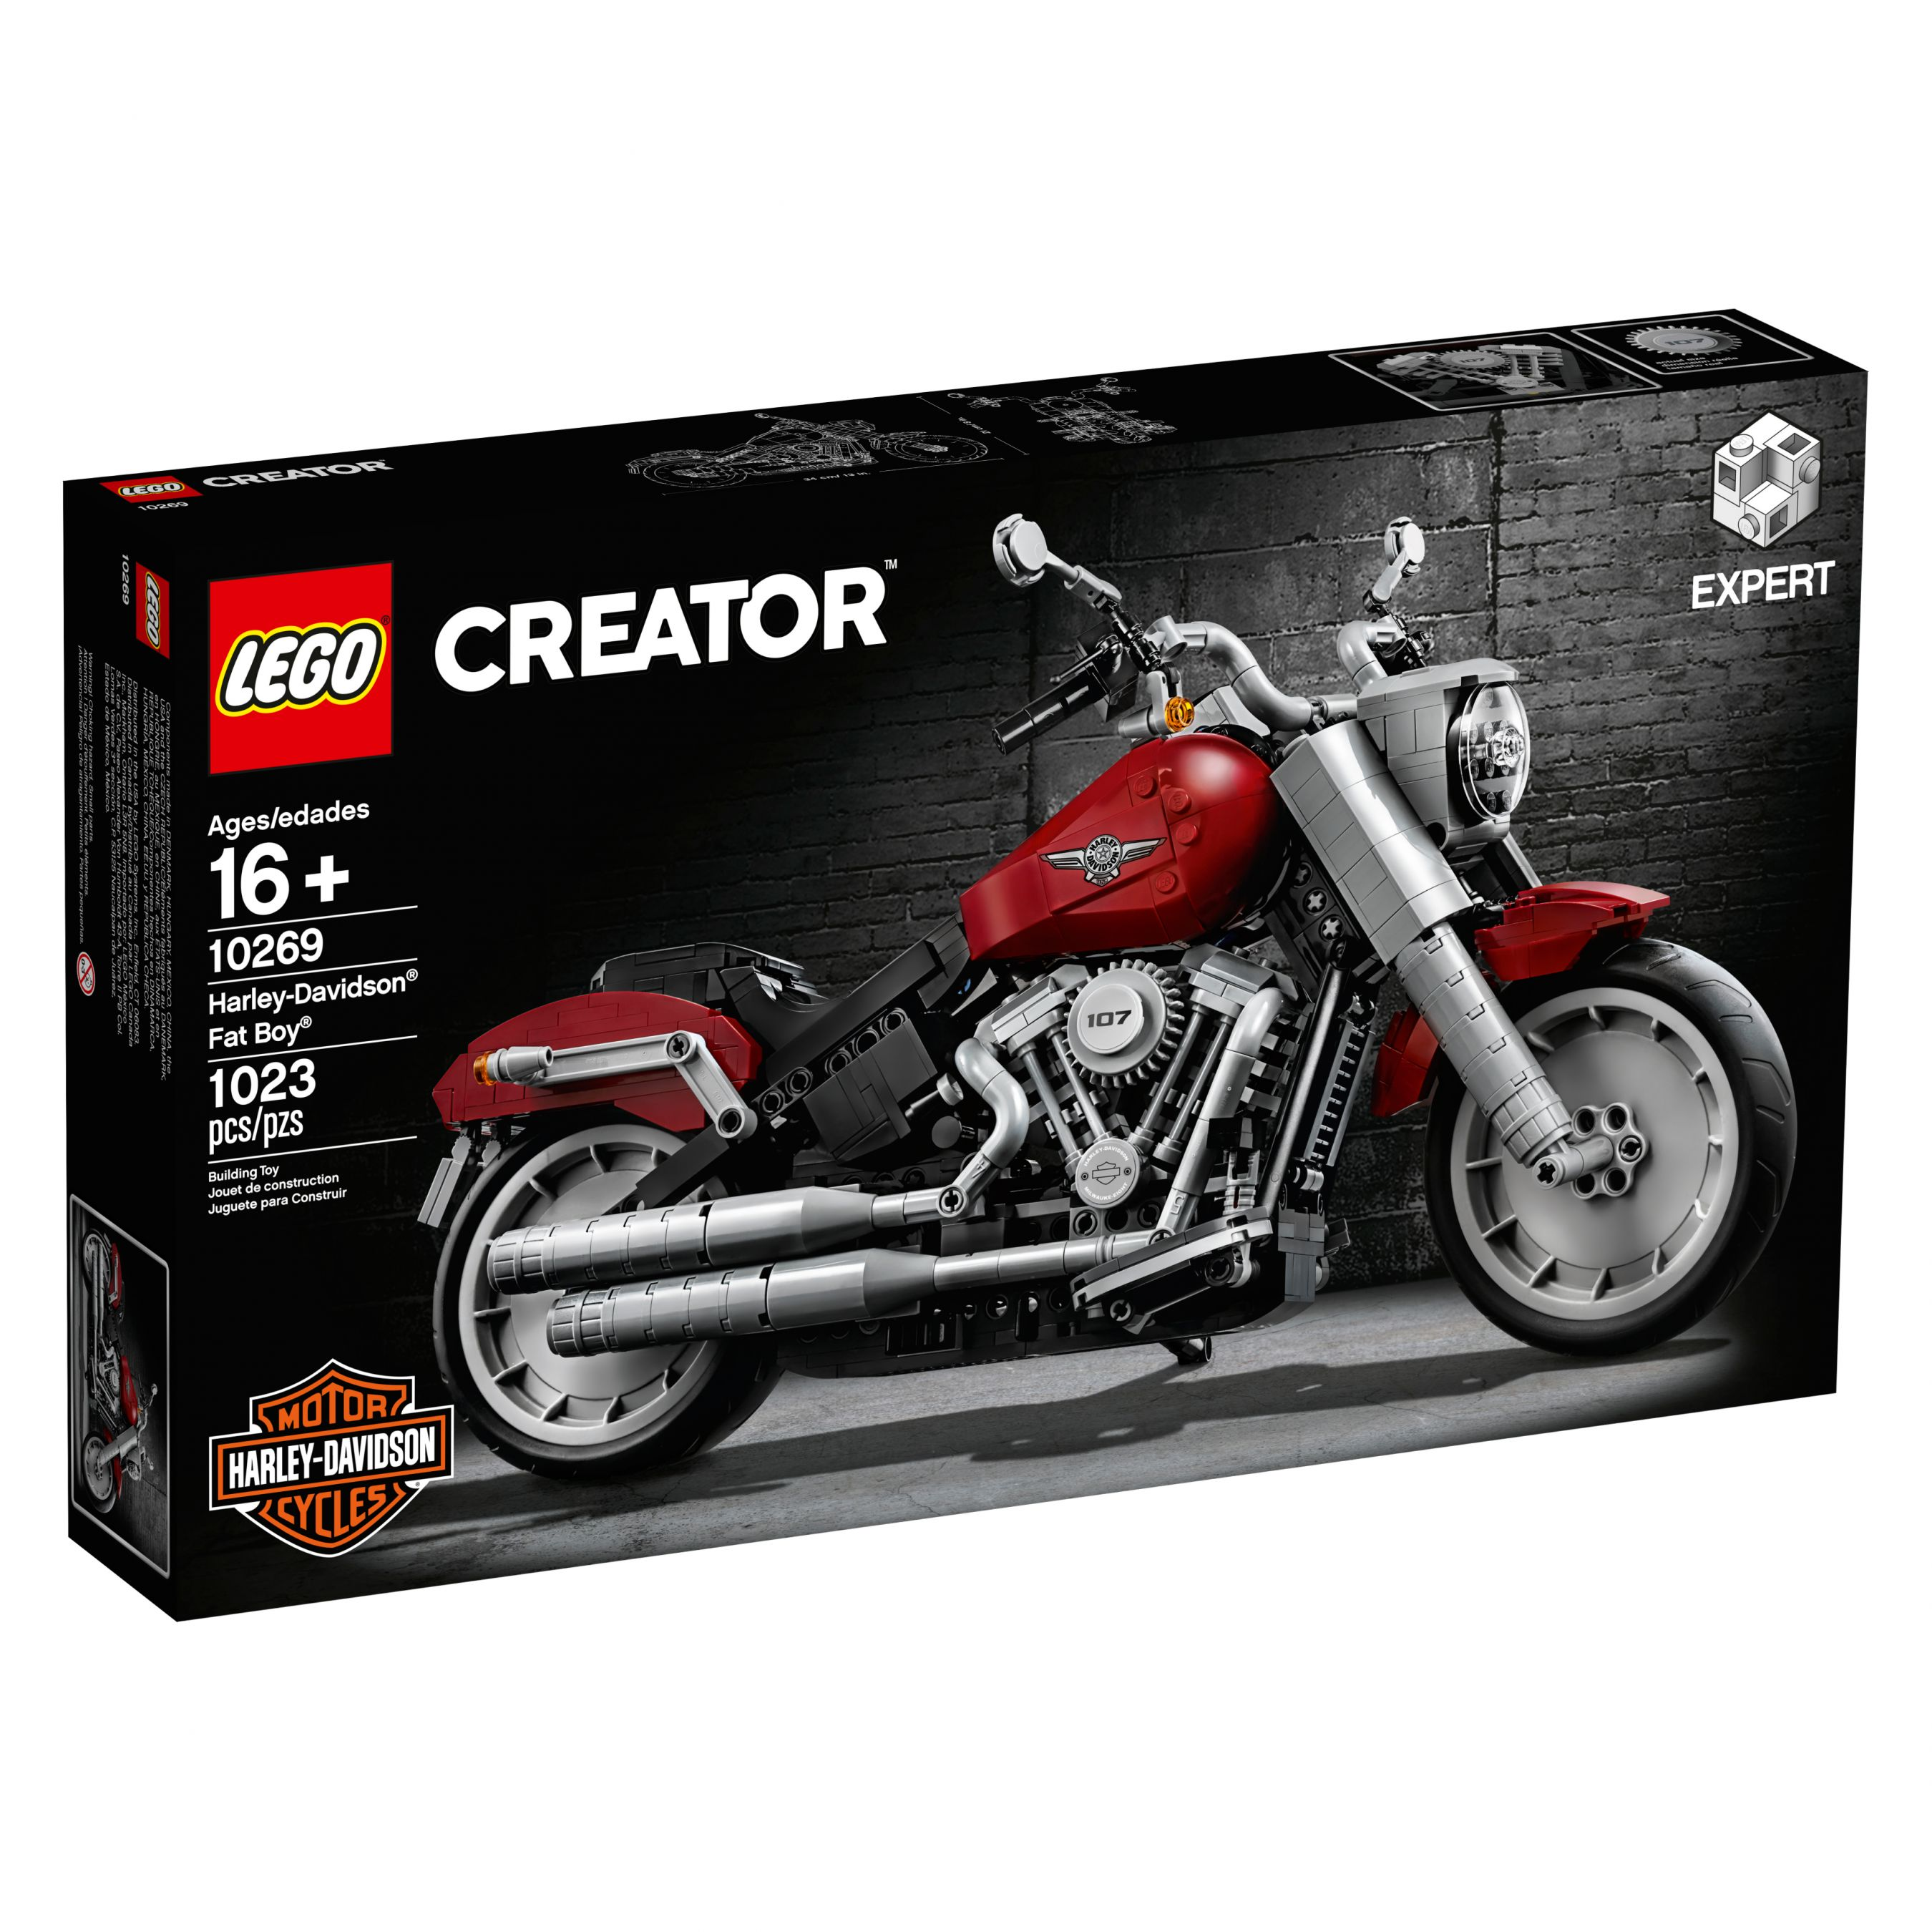 LEGO Advanced Models 10269 Harley-Davidson® Fat Boy® LEGO_10269_alt1.jpg